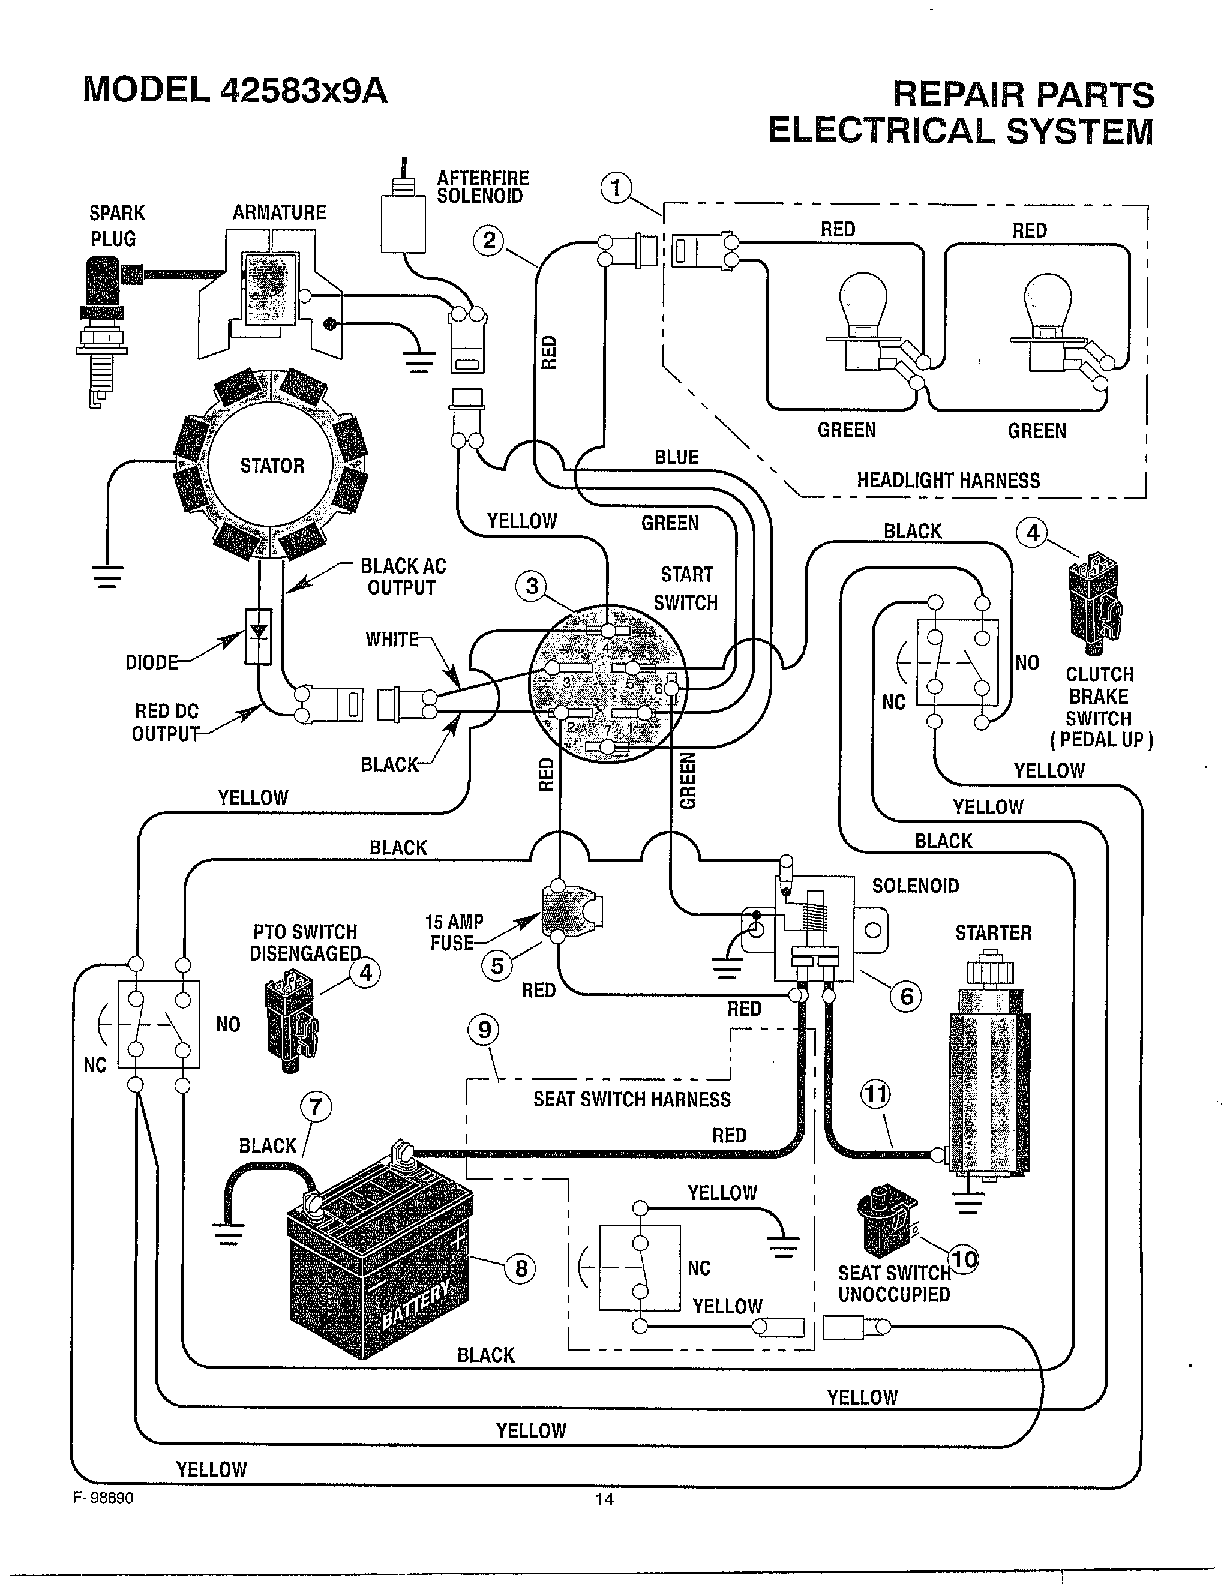 murray riding lawn mower ignition switch wiring diagram create a venn comparing osmosis and diffusion 16.5 hp 42